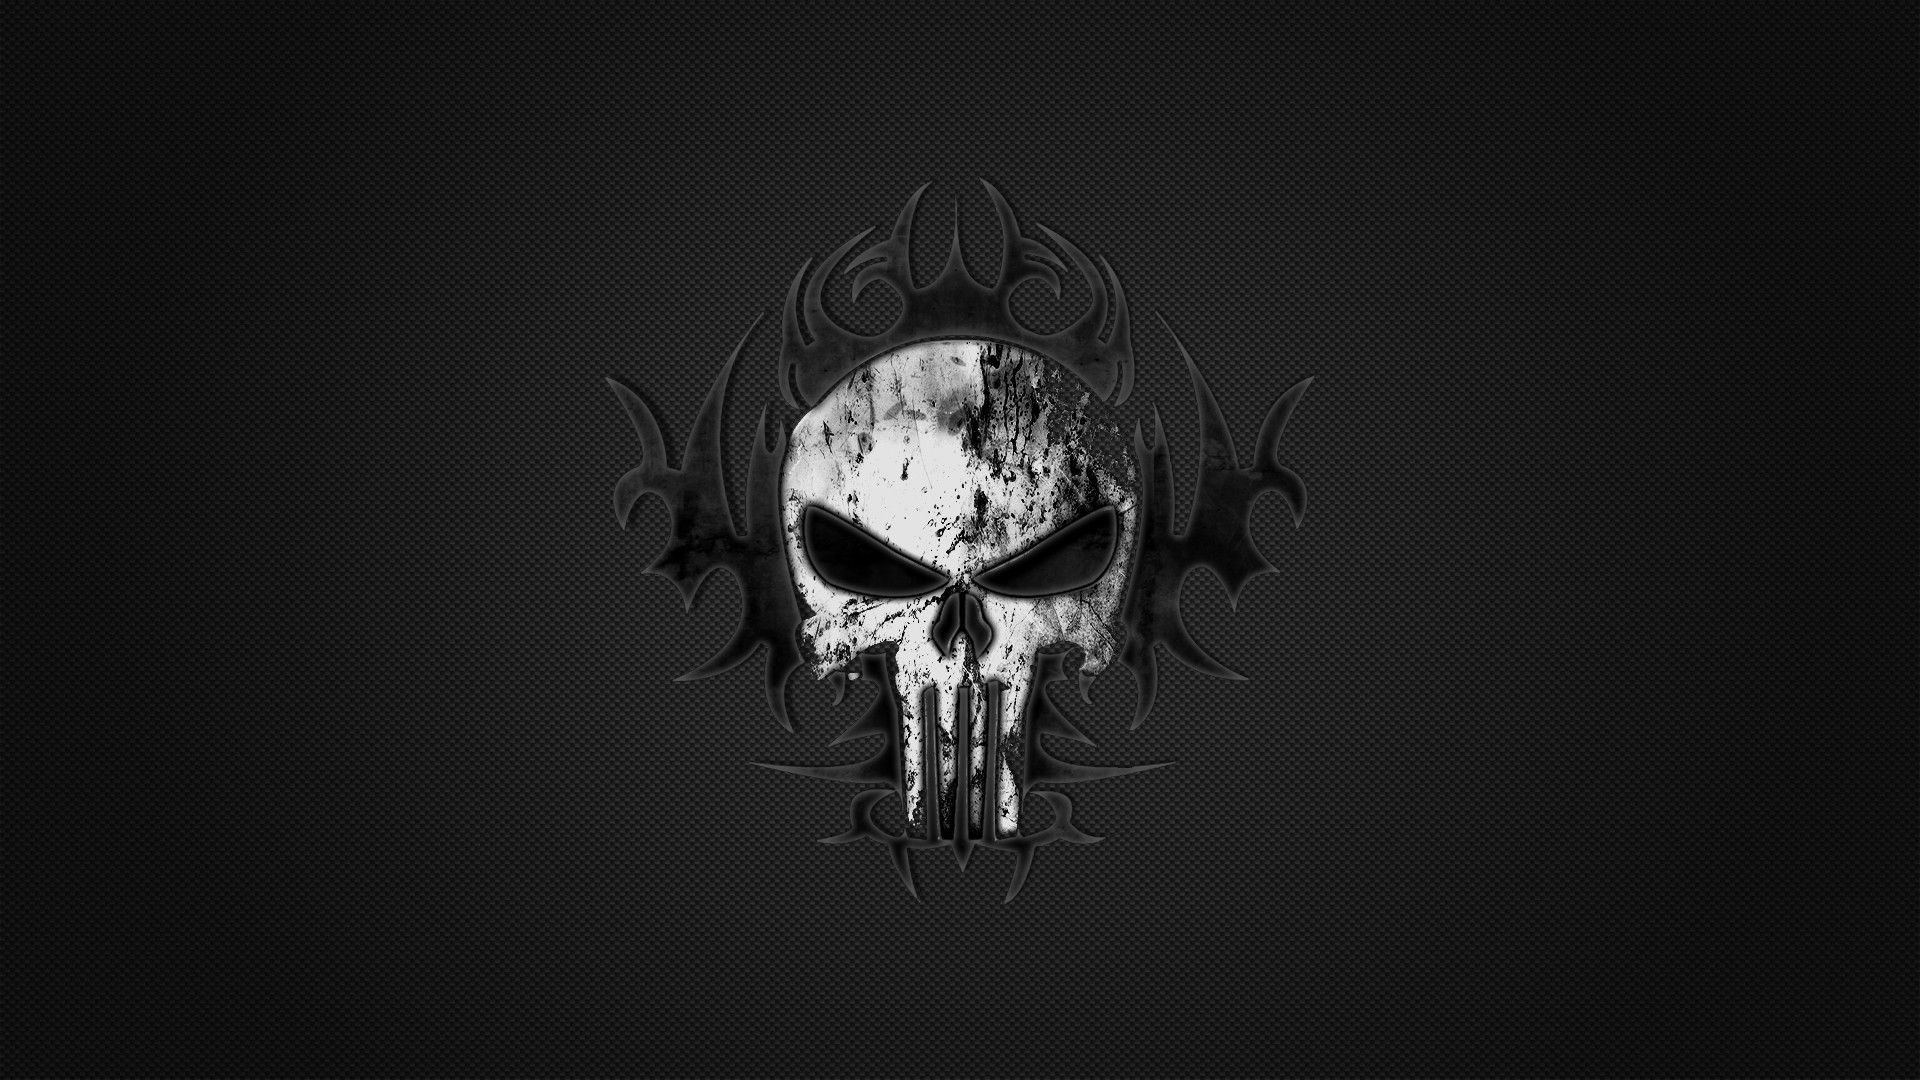 Skull Logo Wallpapers Top Free Skull Logo Backgrounds